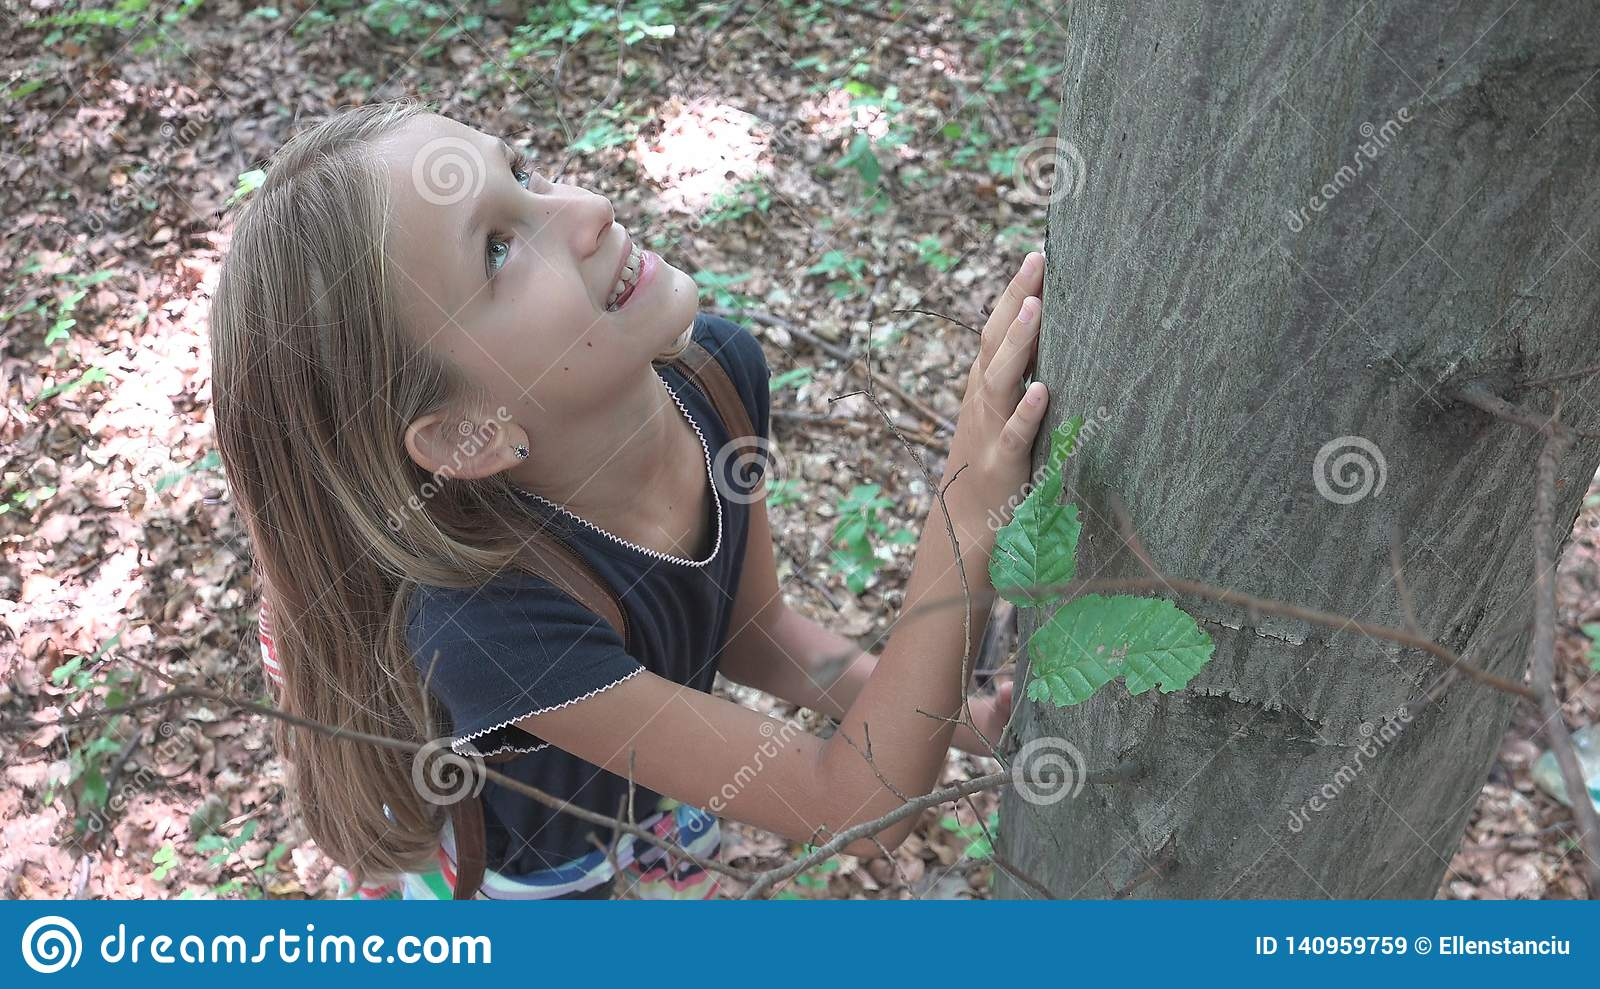 Child in Forest, Kid Playing in Nature, Girl in Adventure Outdoor Behind a Tree